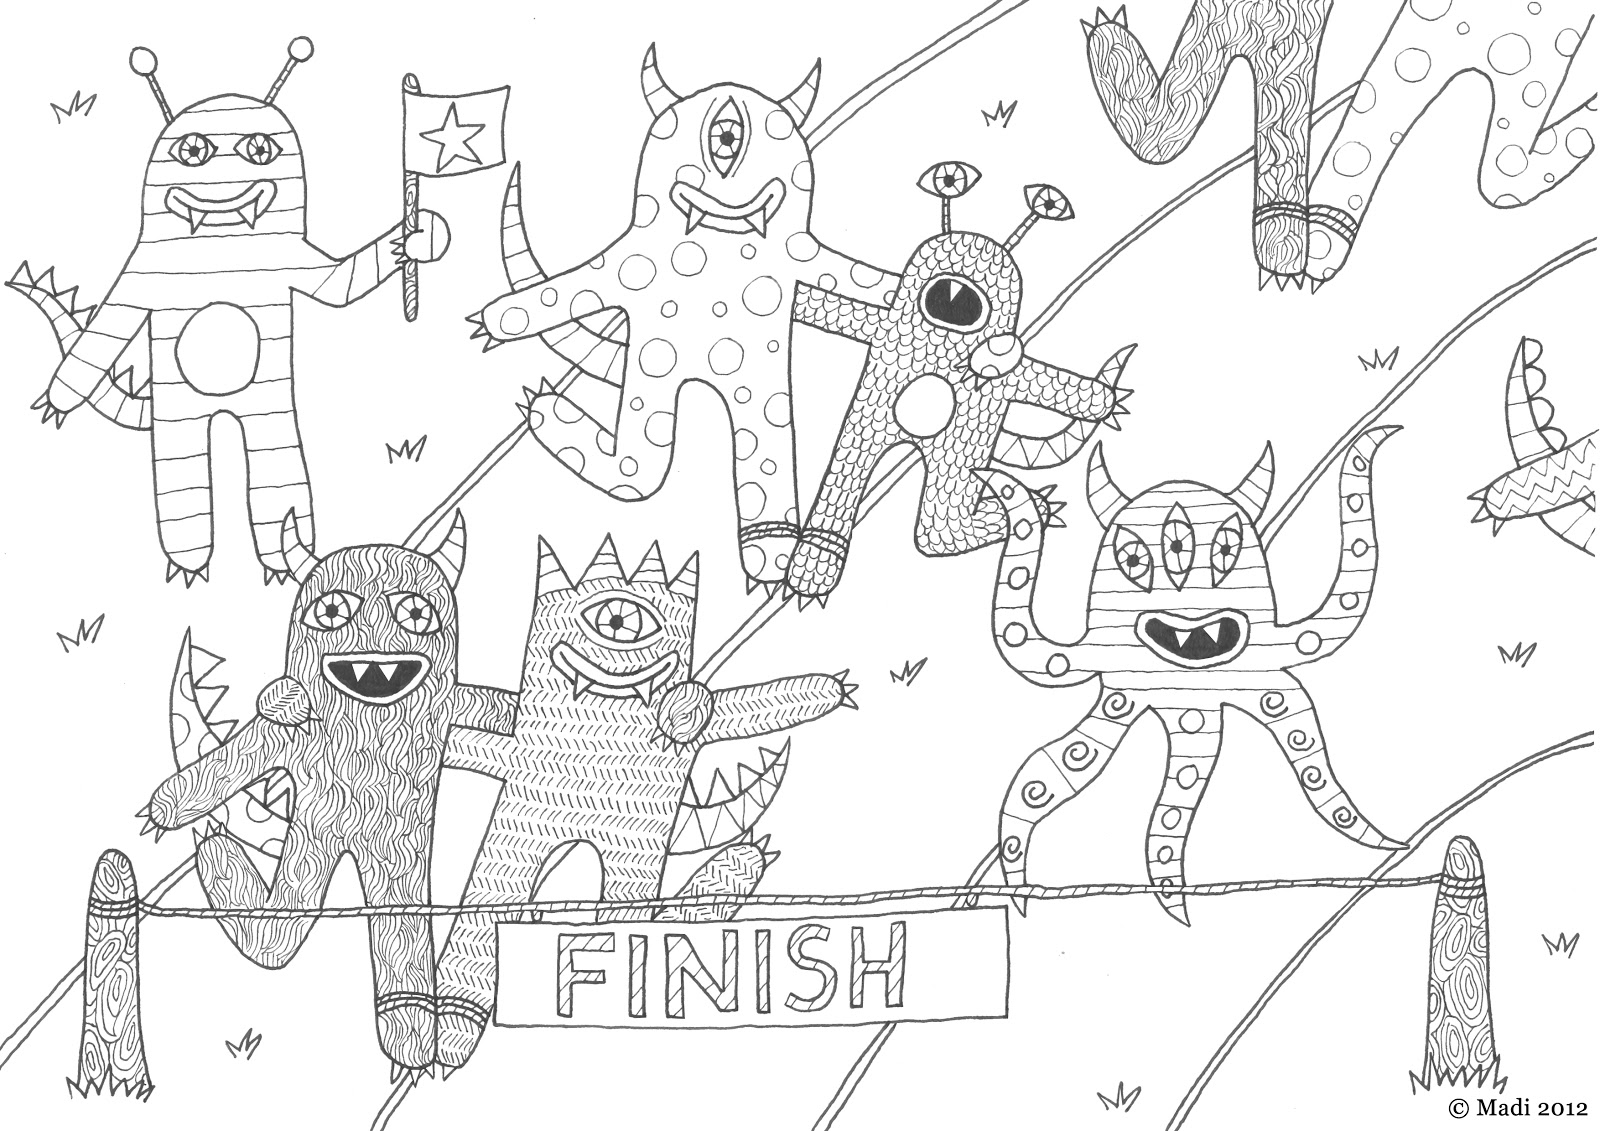 sports day colouring egg and spoon race colouring page colouring sports day